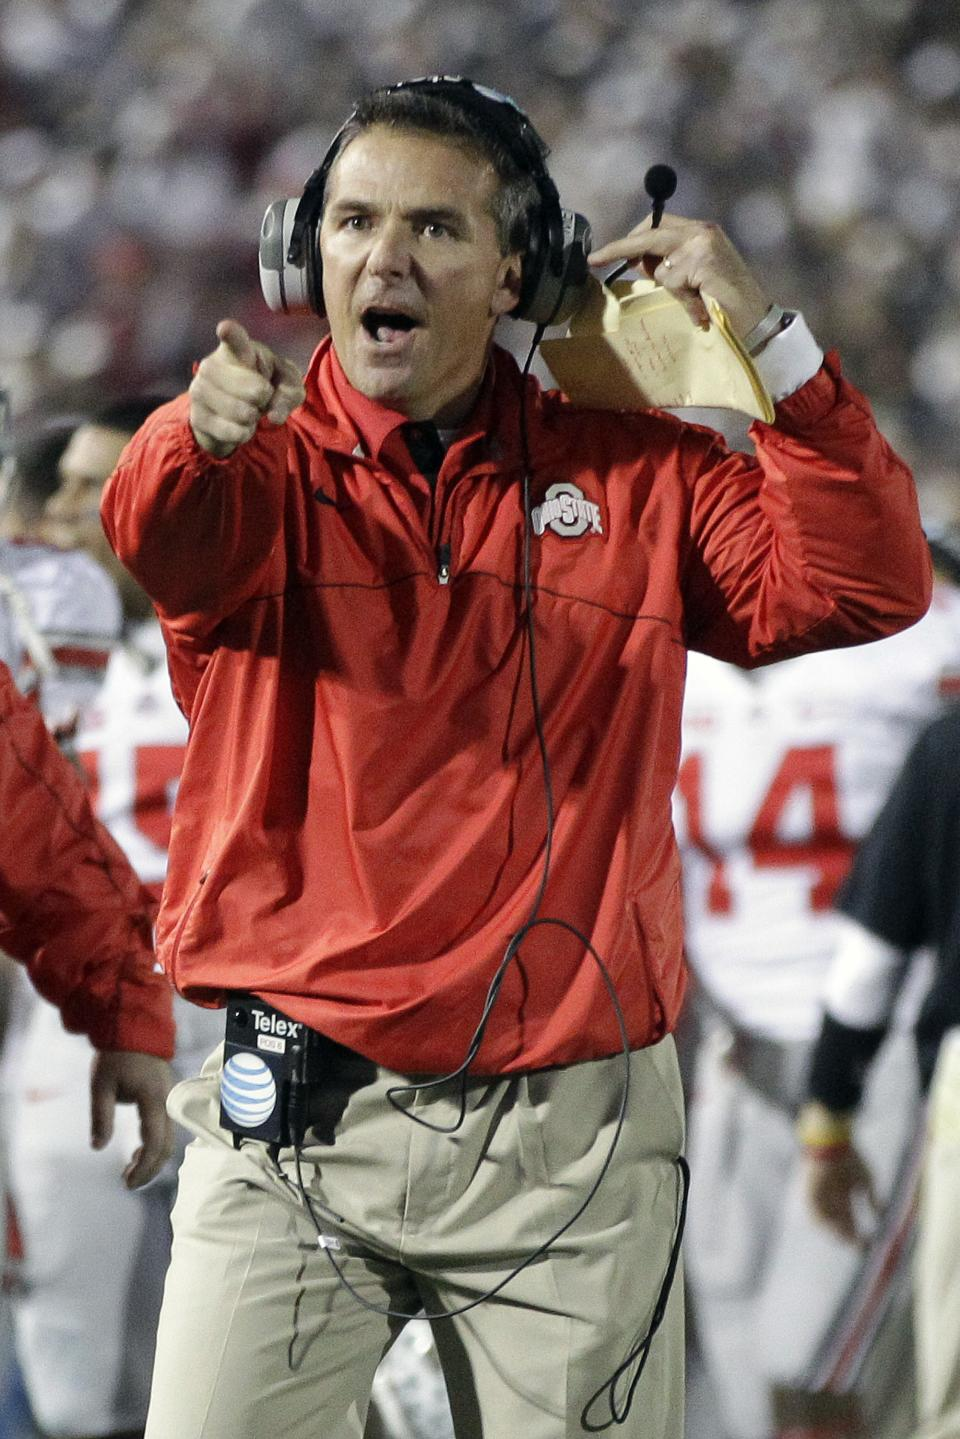 Ohio State head coach Urban Meyer celebrates a touchdown by Ohio State quarterback Braxton Miller (5) during the third quarter of an NCAA college football game against Penn State in State College, Pa., Saturday, Oct. 27, 2012. (AP Photo/Gene J. Puskar)